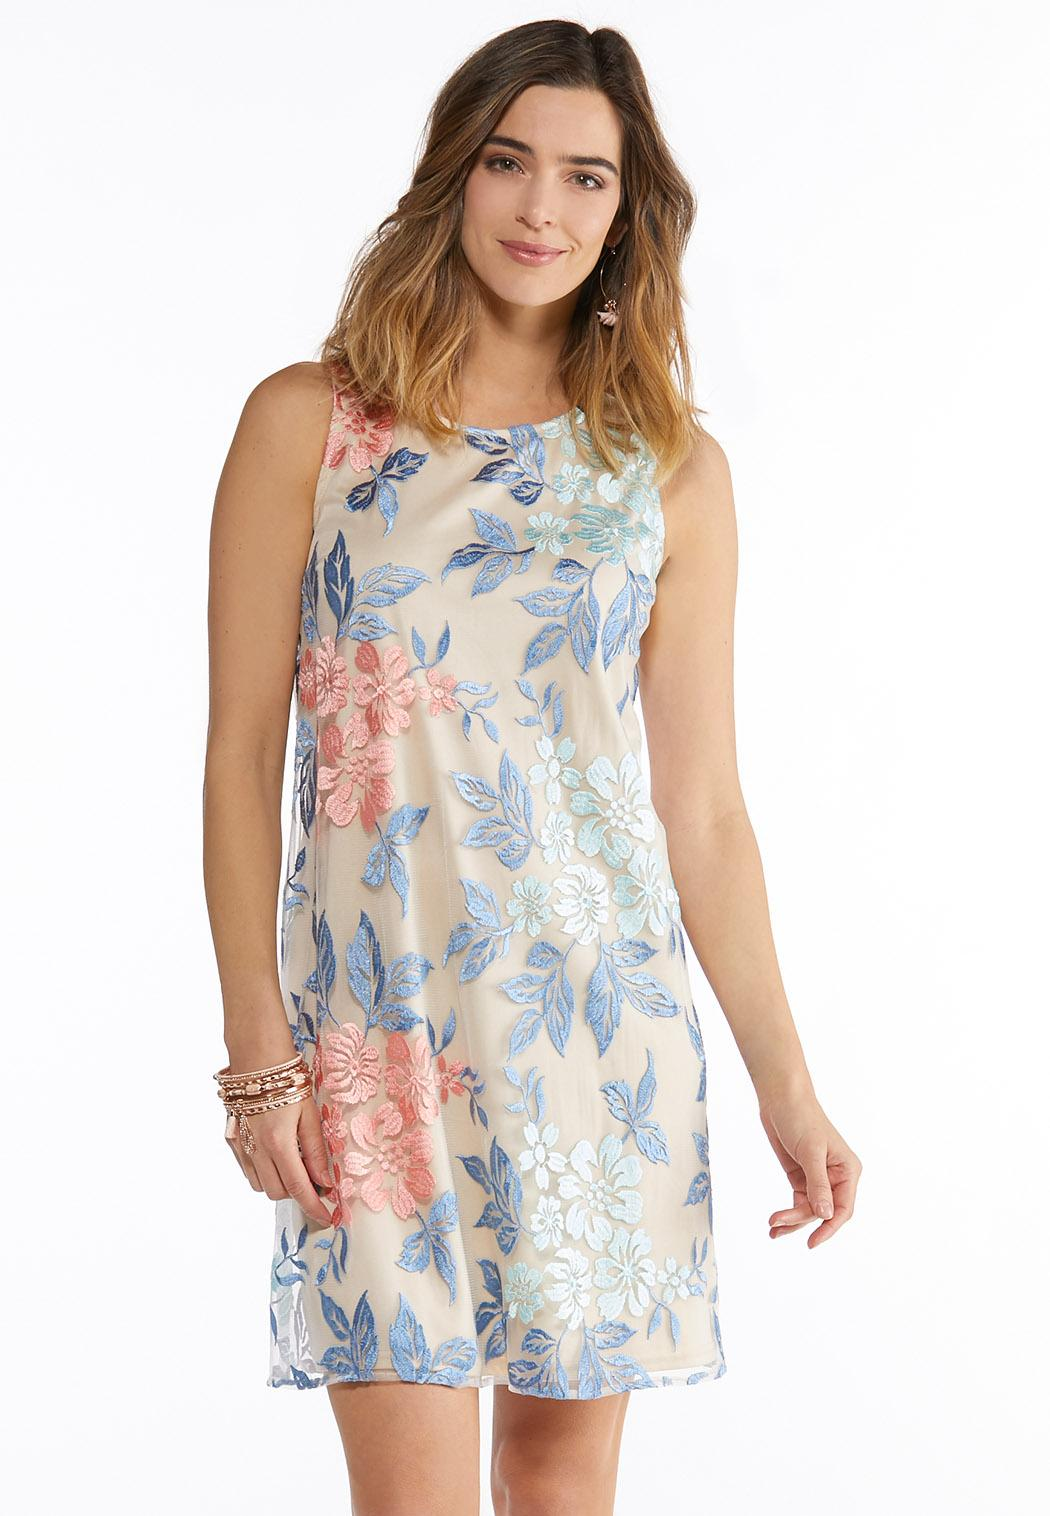 3aa5a8ece2d Floral Embroidered Swing Dress alternate view · Floral Embroidered Swing  Dress